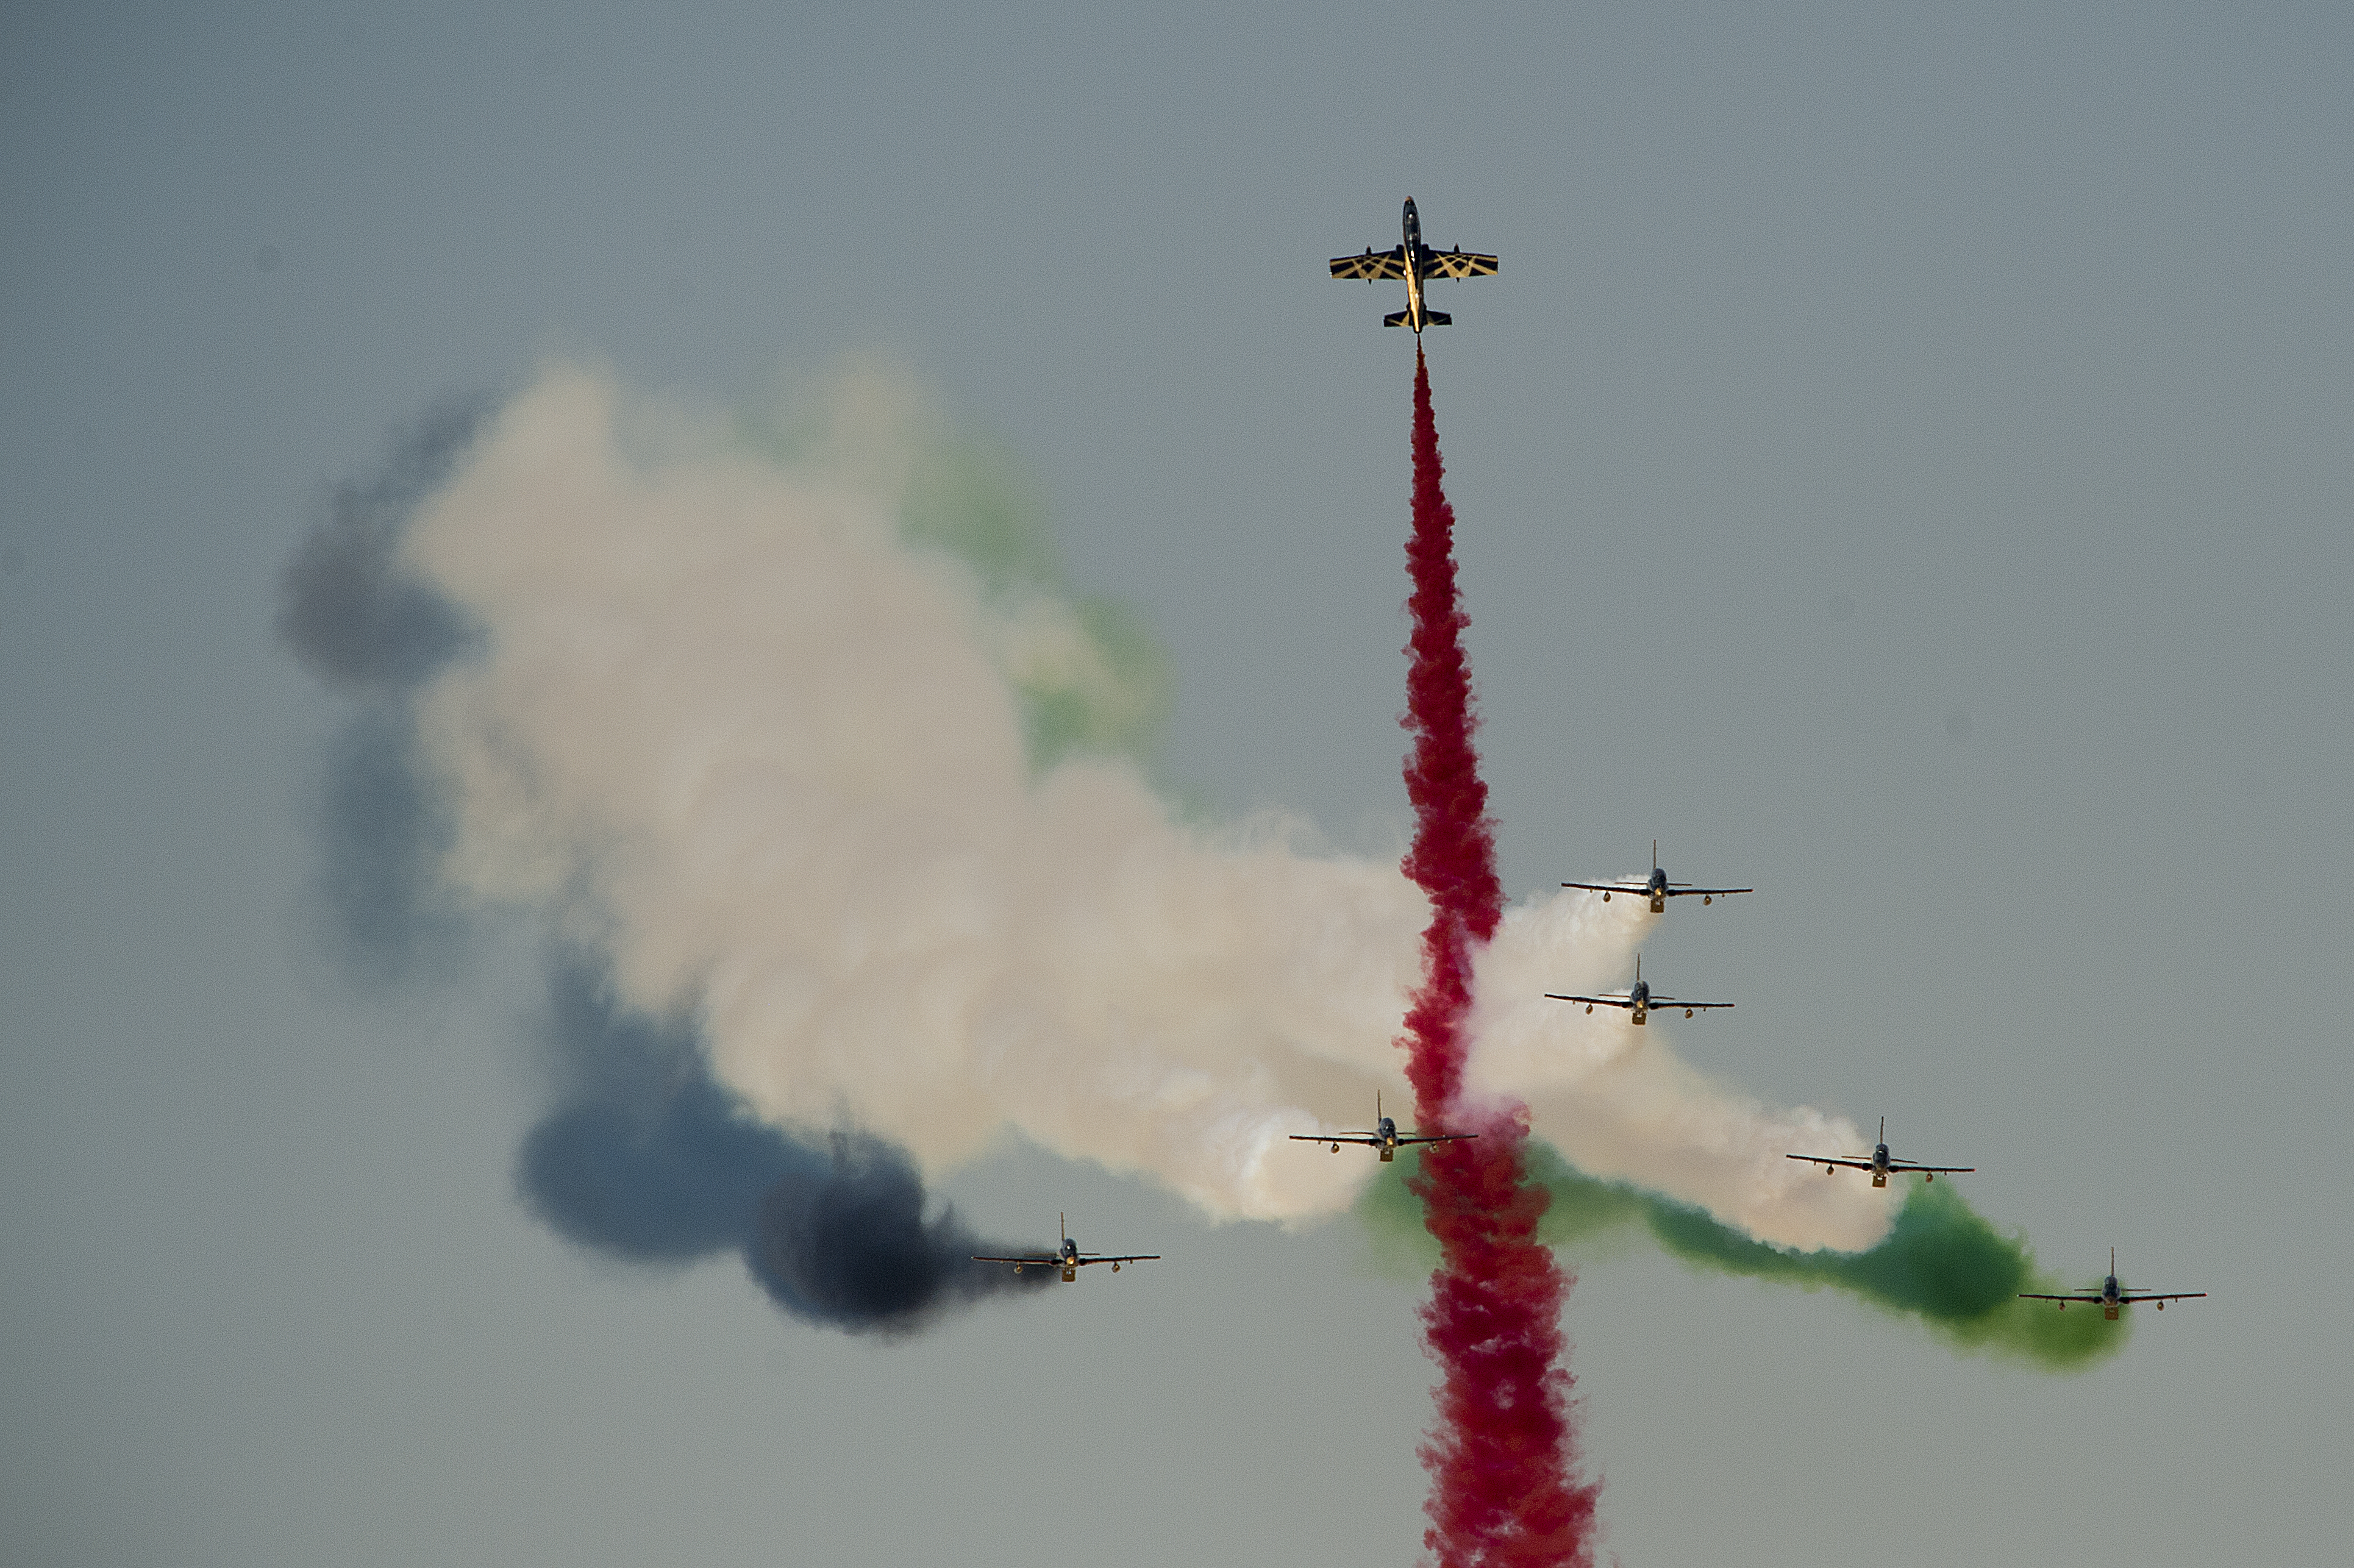 """""""Al Fursan"""" (The Knights), the United Arab Emirates Air Force aerobatic display team, performs during the 2015 Dubai Air Show, Nov. 9, 2015. The air show is a biennial event and is recognized as the premier aviation and air industry event in the Gulf and Middle East region and is one of the largest air shows in the world. (U.S. Air Force photo by Tech. Sgt. Nathan Lipscomb)"""